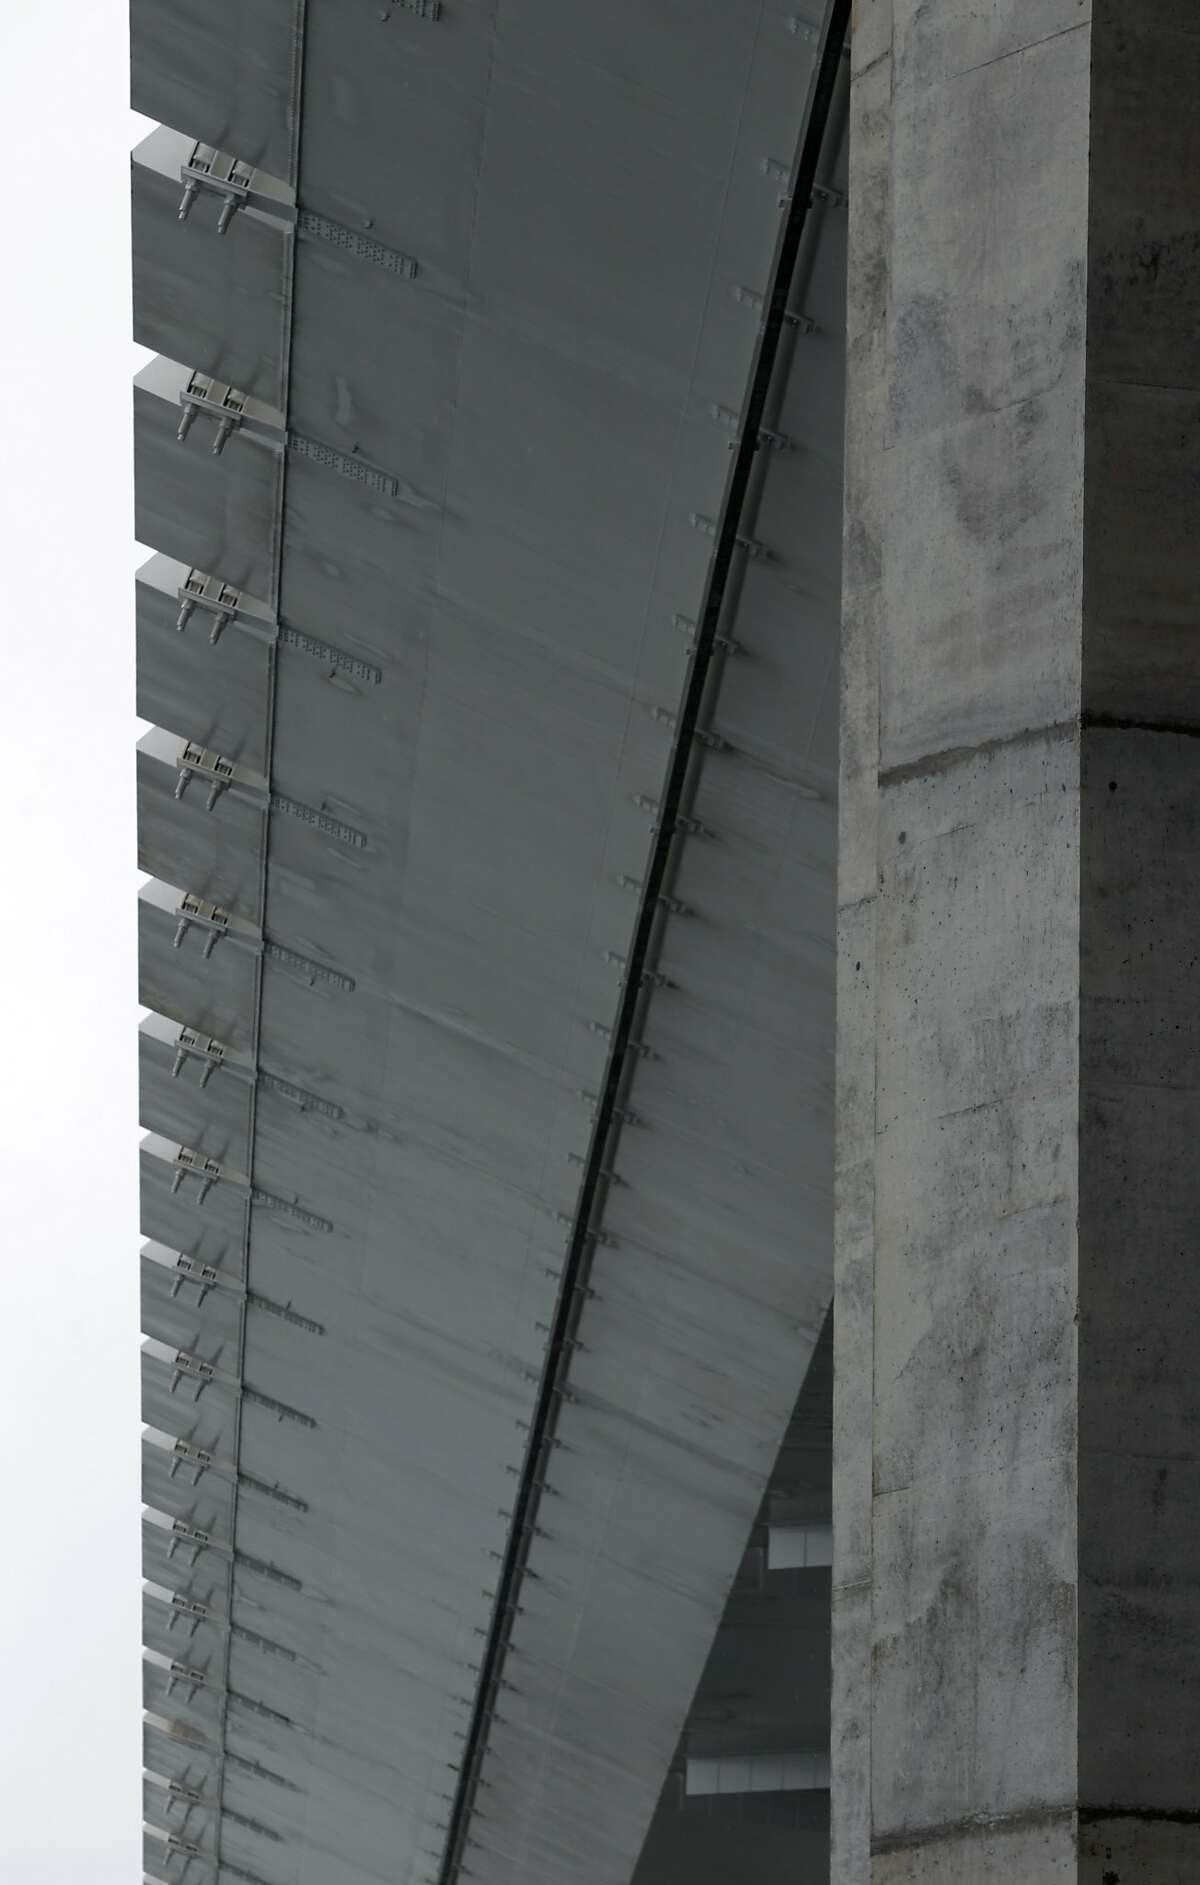 The underside of the SAS bridge deck of the new eastern Bay Bridge span is seen in San Francisco, Calif. on Thursday, Feb. 6, 2014. Engineers are monitoring areas where small amounts of water is seeping into the structure, a situation which is not uncommon, according to spokesman Andrew Gordon.